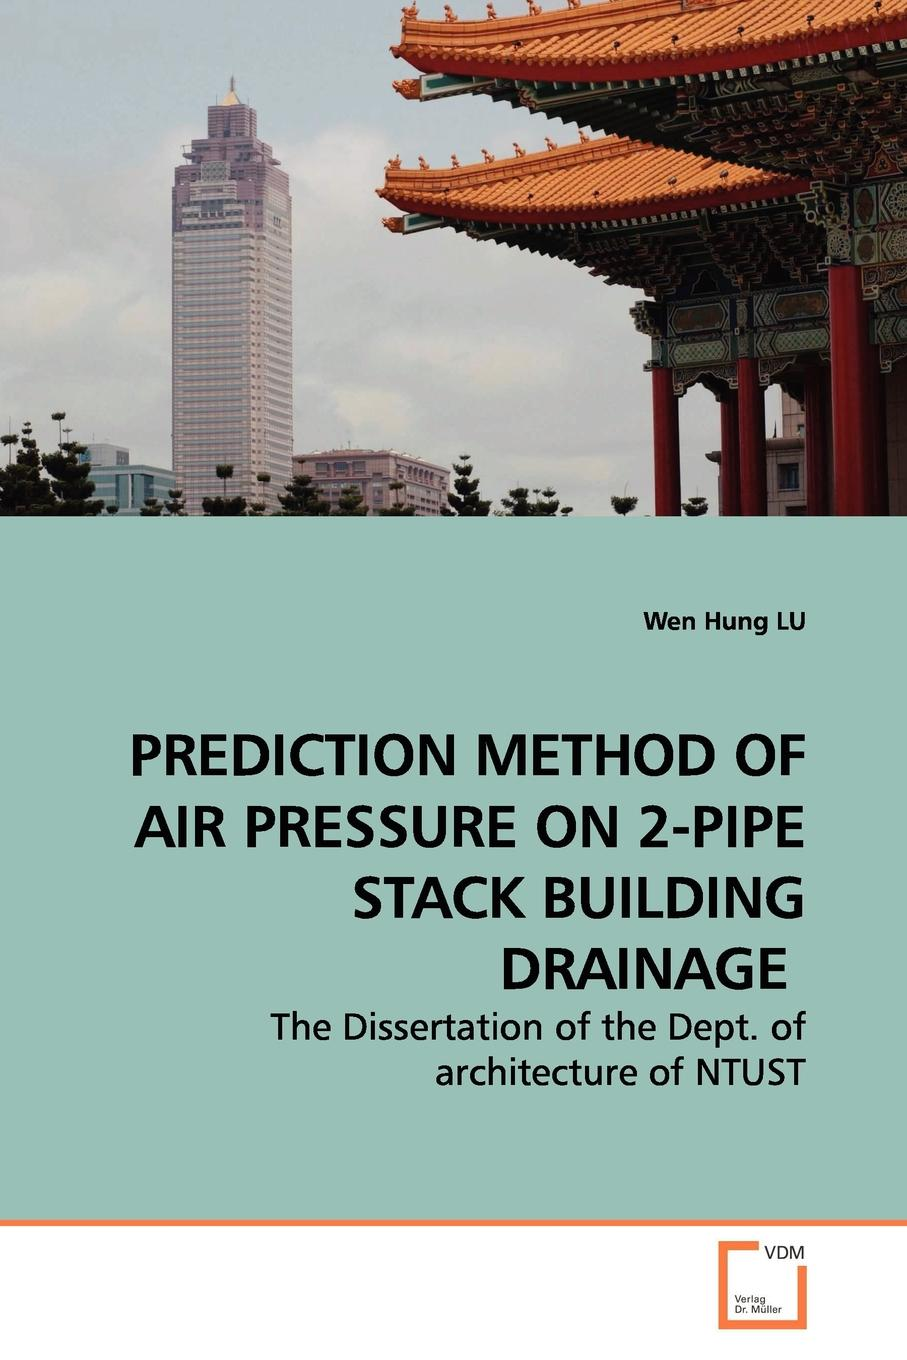 Wen Hung LU PREDICTION METHOD OF AIR PRESSURE ON 2-PIPE STACK BUILDING DRAINAGE сервер bluetooth stack